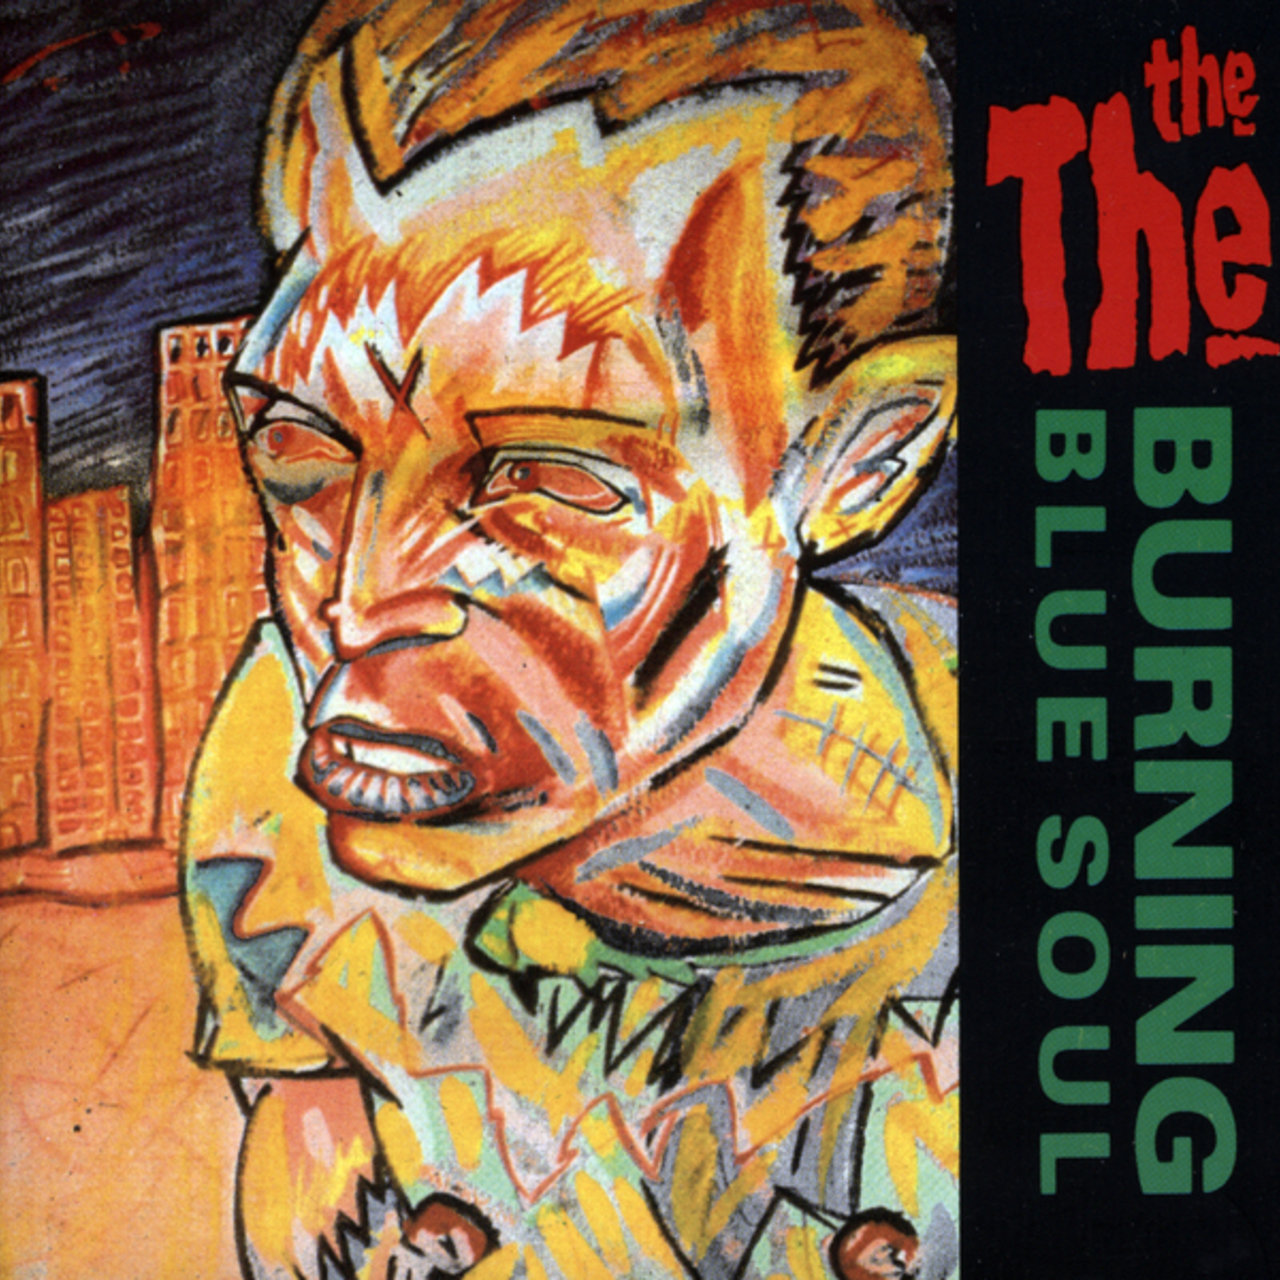 The The Burning Blue Soul